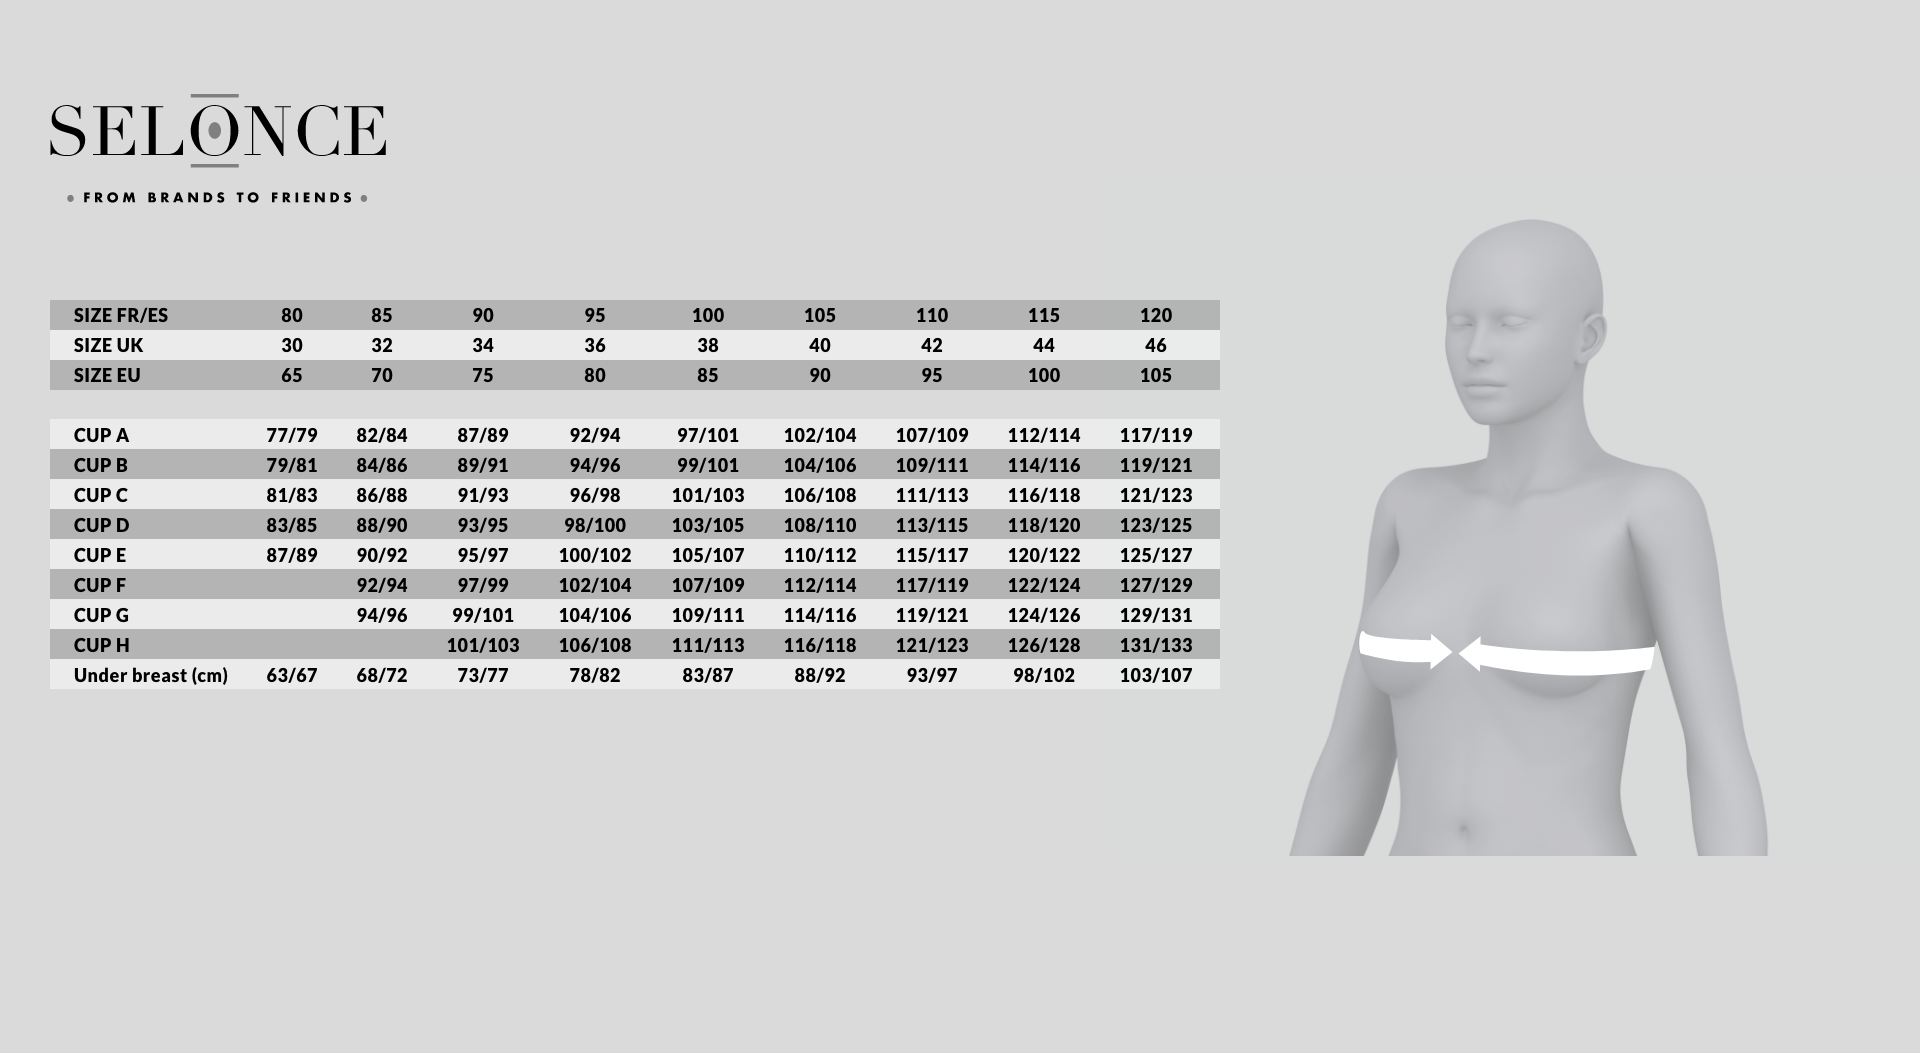 Selonce - Breast size chart